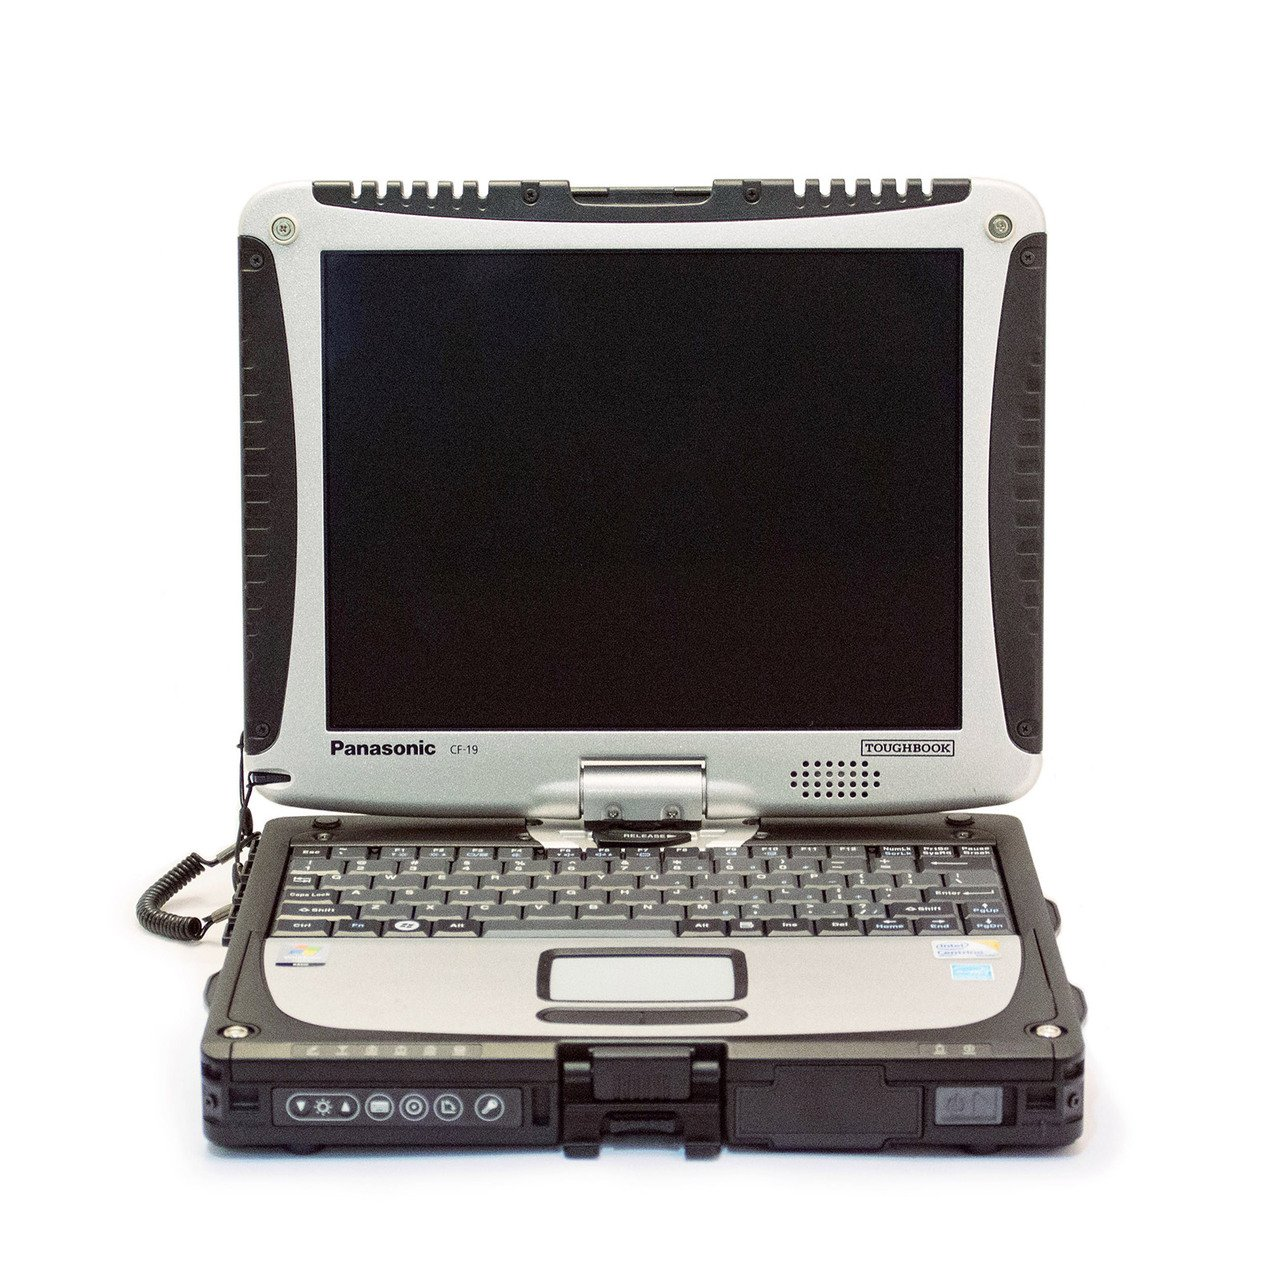 """Laptop Panasonic Toughbook CF-19 MK8, Intel Core i5 3610ME 2.7 GHz, WI-FI, Bluetooth, Display 10,4"""" 1024 by 768 Touchscreen, 4 GB DDR3; 500 GB HDD SATA, Second Hand - imaginea 1"""